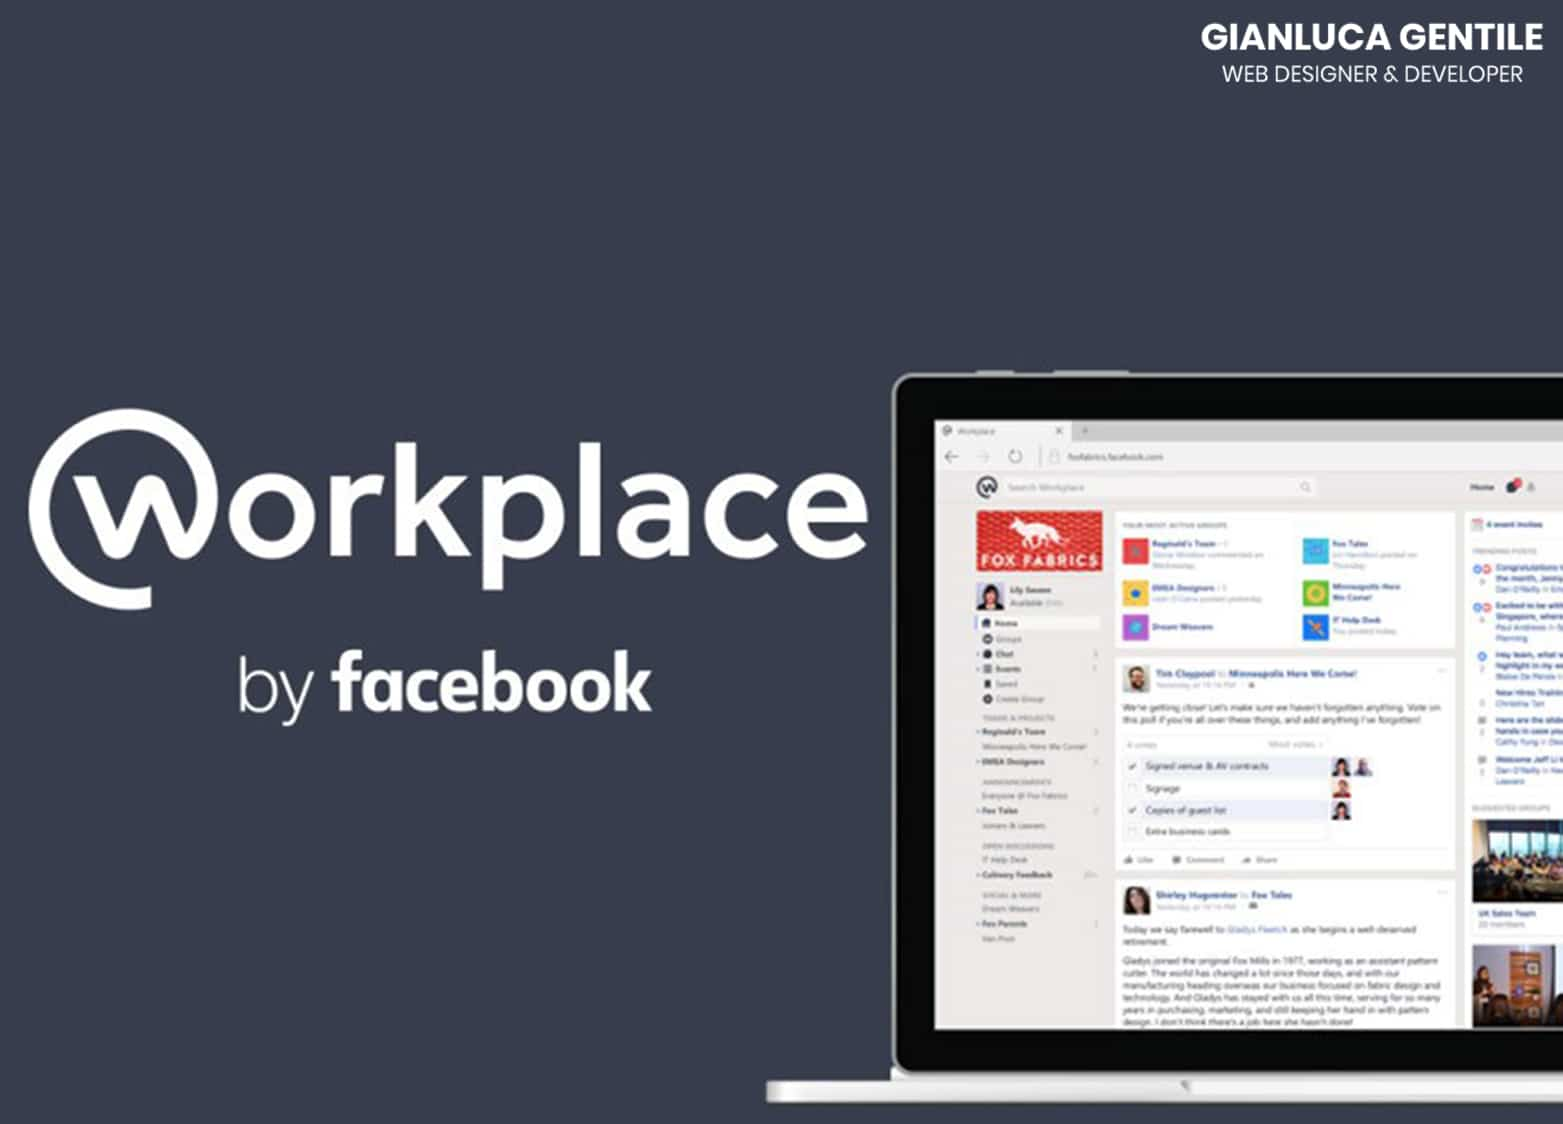 facebook workplace - Facebook Workplace per il Non Profit - Facebook Workplace per il Non Profit